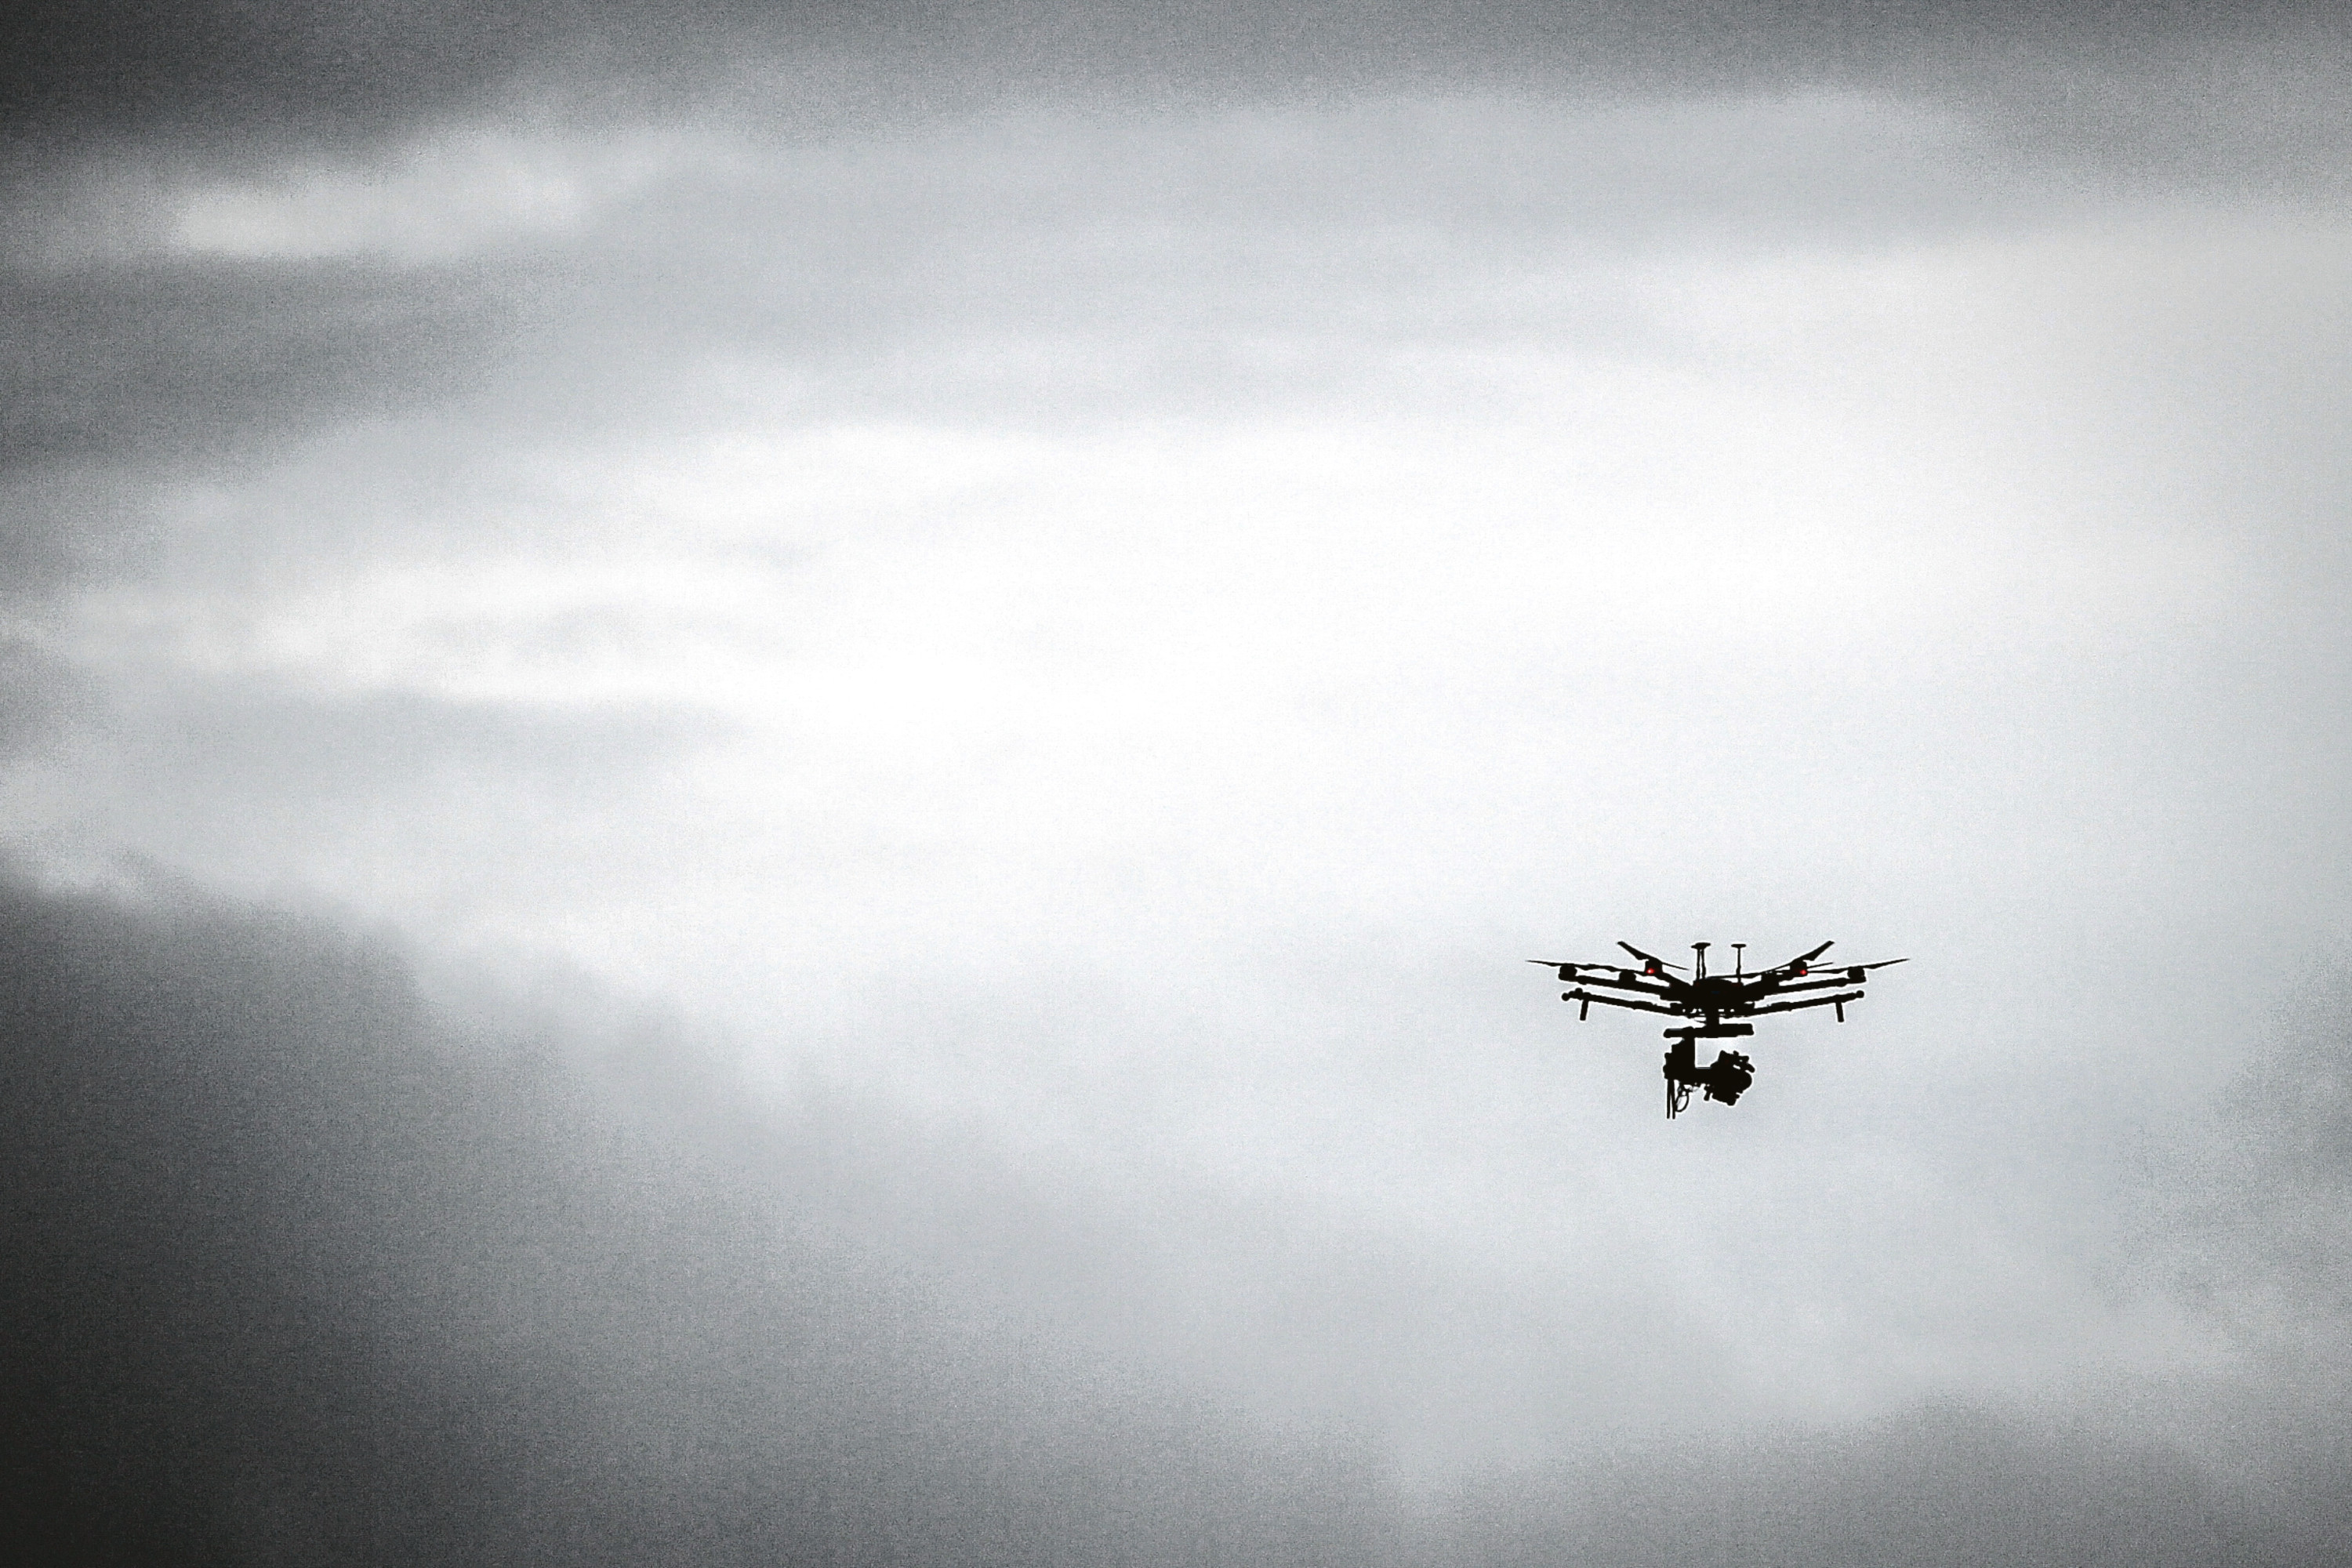 Drones have shut down two major airports in recent weeks.